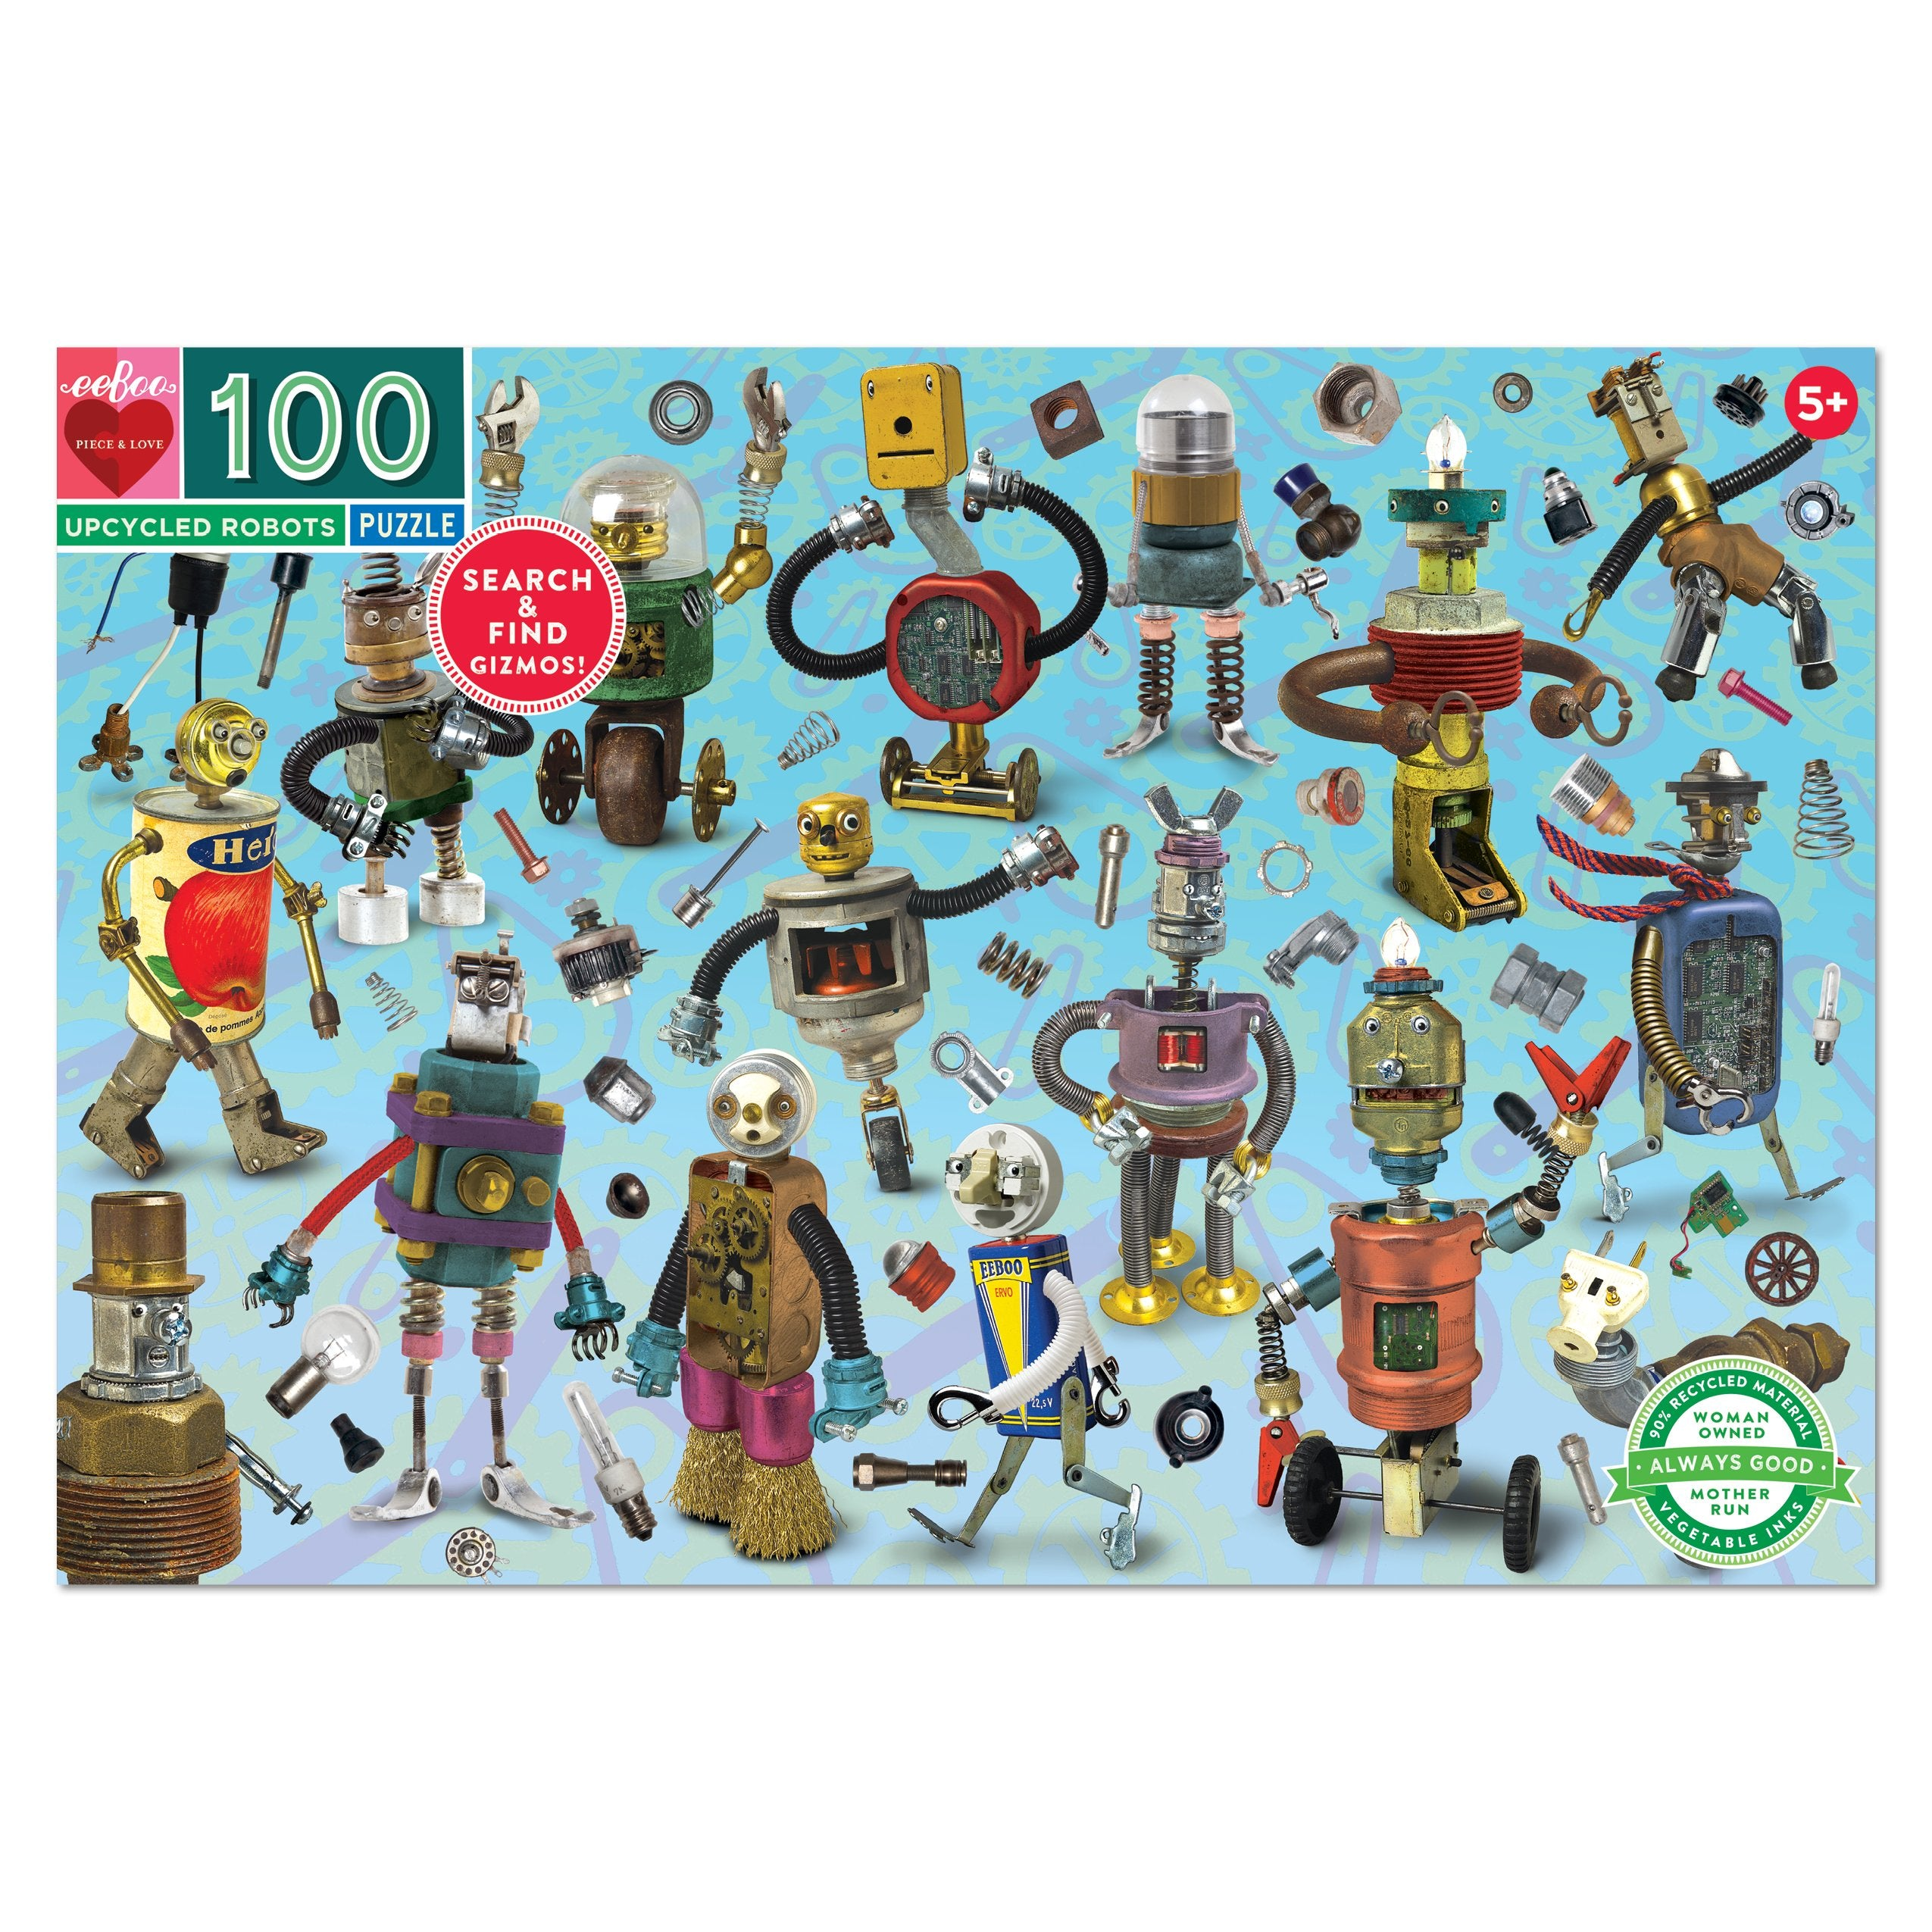 Upcycled Robots 100 Piece Puzzle